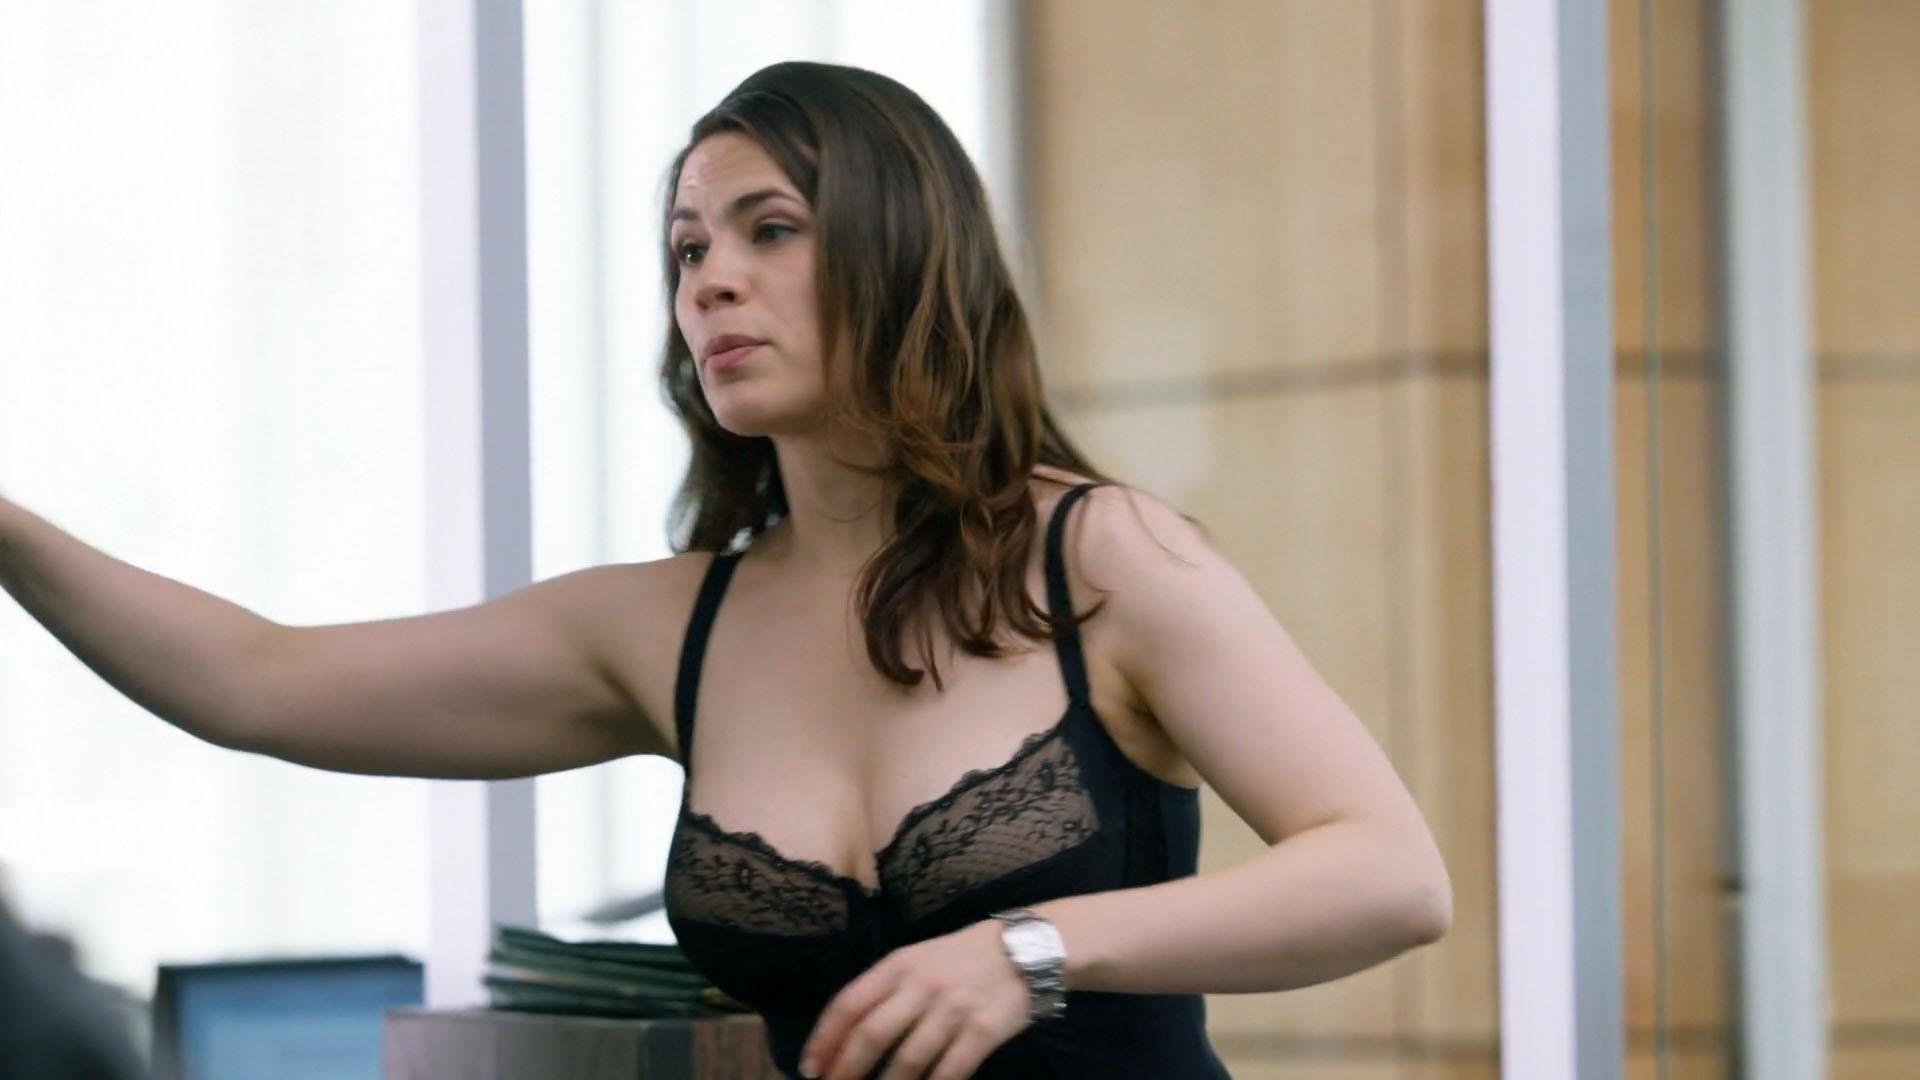 Porn Hayley Atwell nude (98 photos), Ass, Hot, Twitter, braless 2017